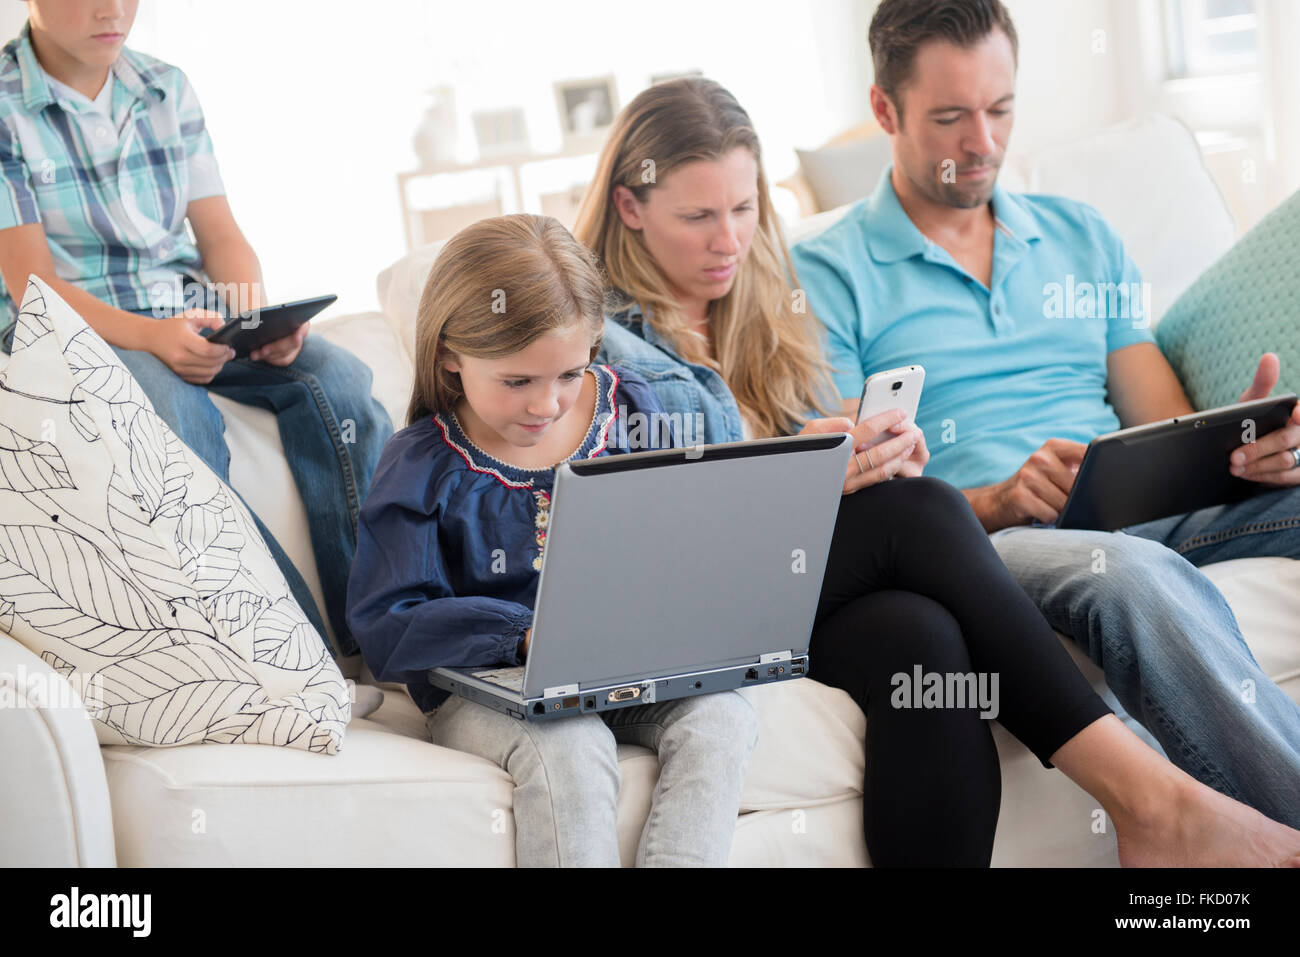 Family with two children (6-7, 8-9) sitting on sofa, using laptop and digital tablets Stock Photo